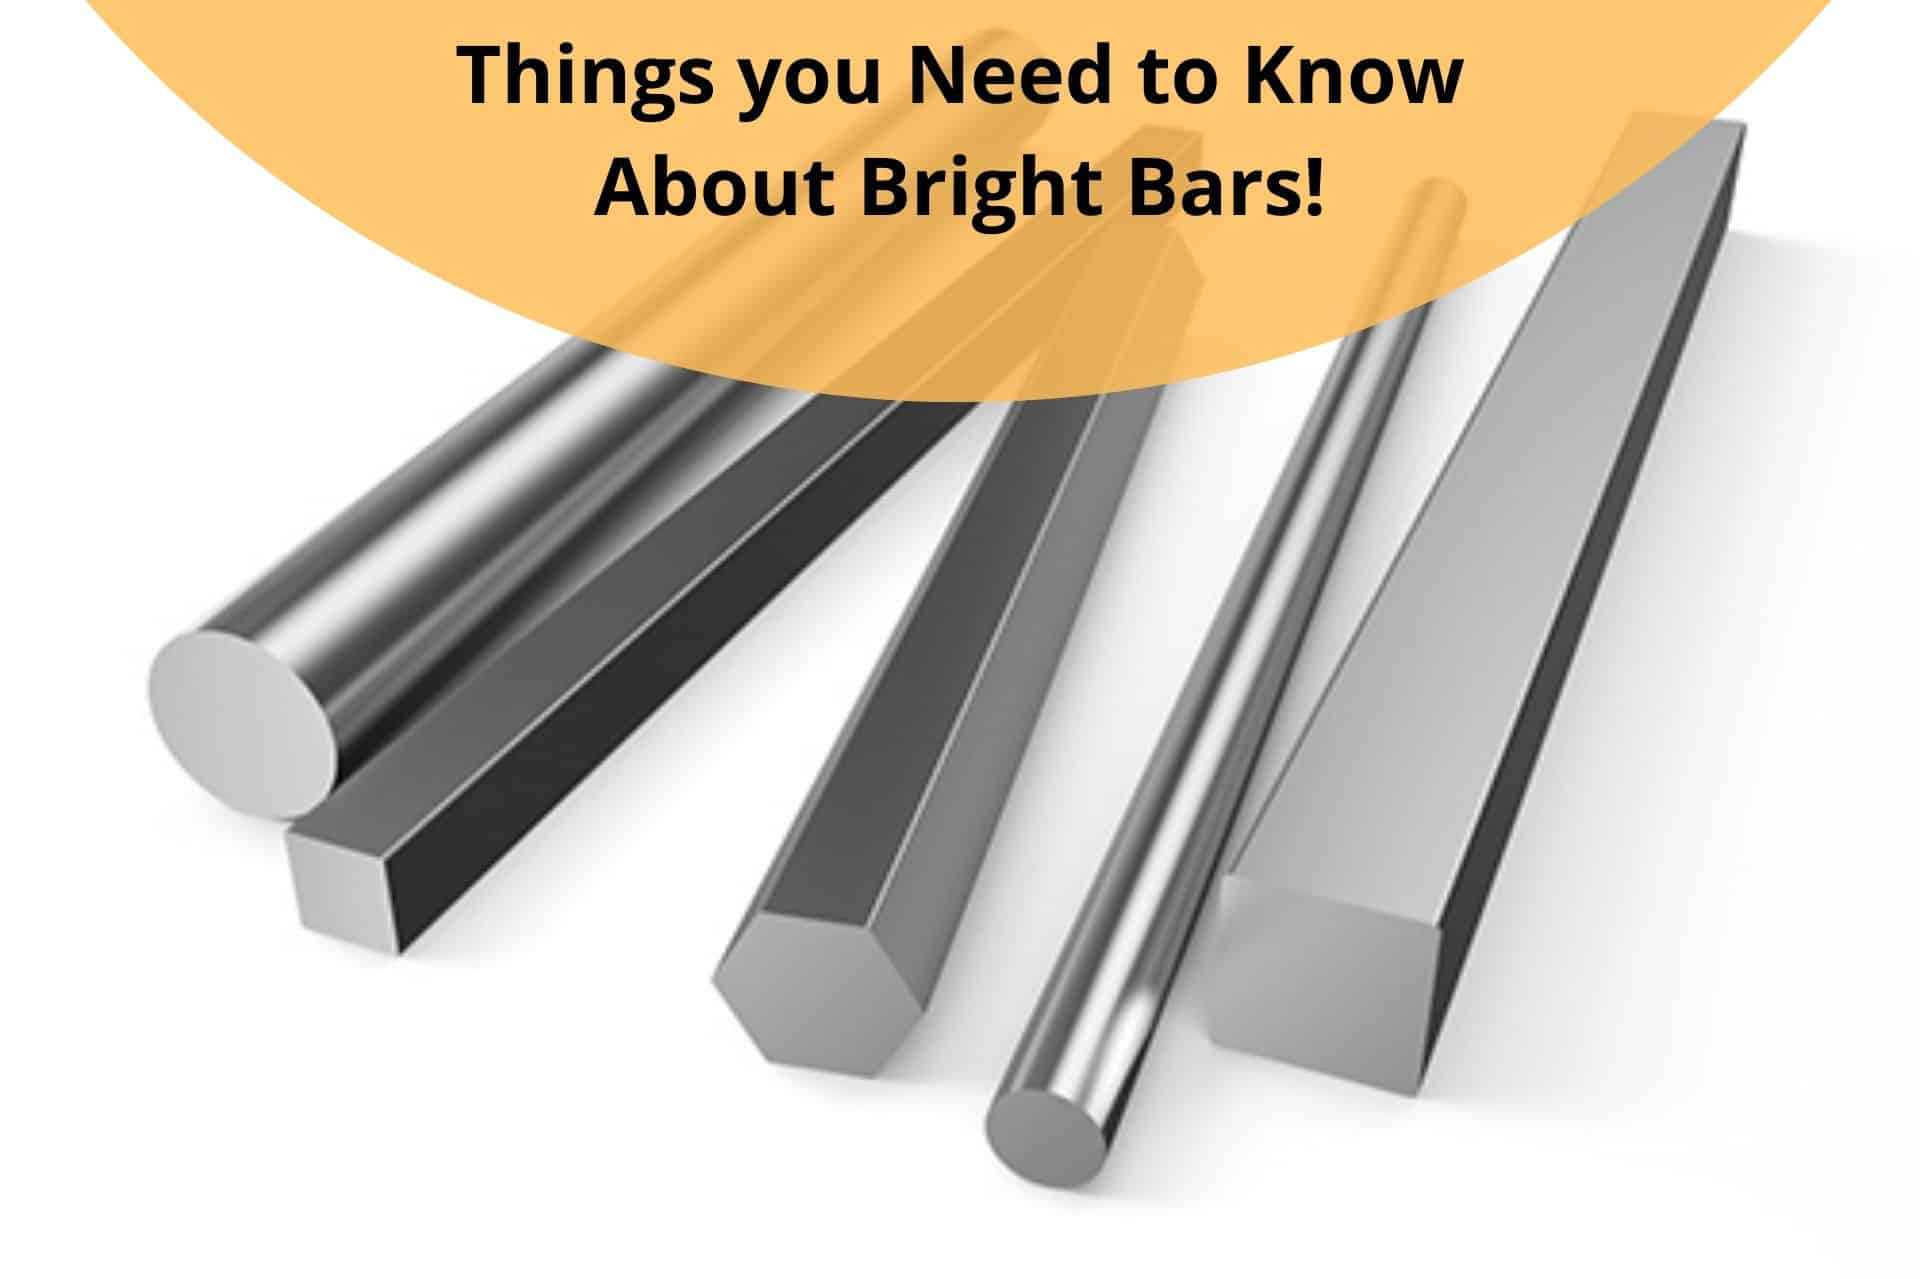 Things you Need to Know About Bright Bars! (1)